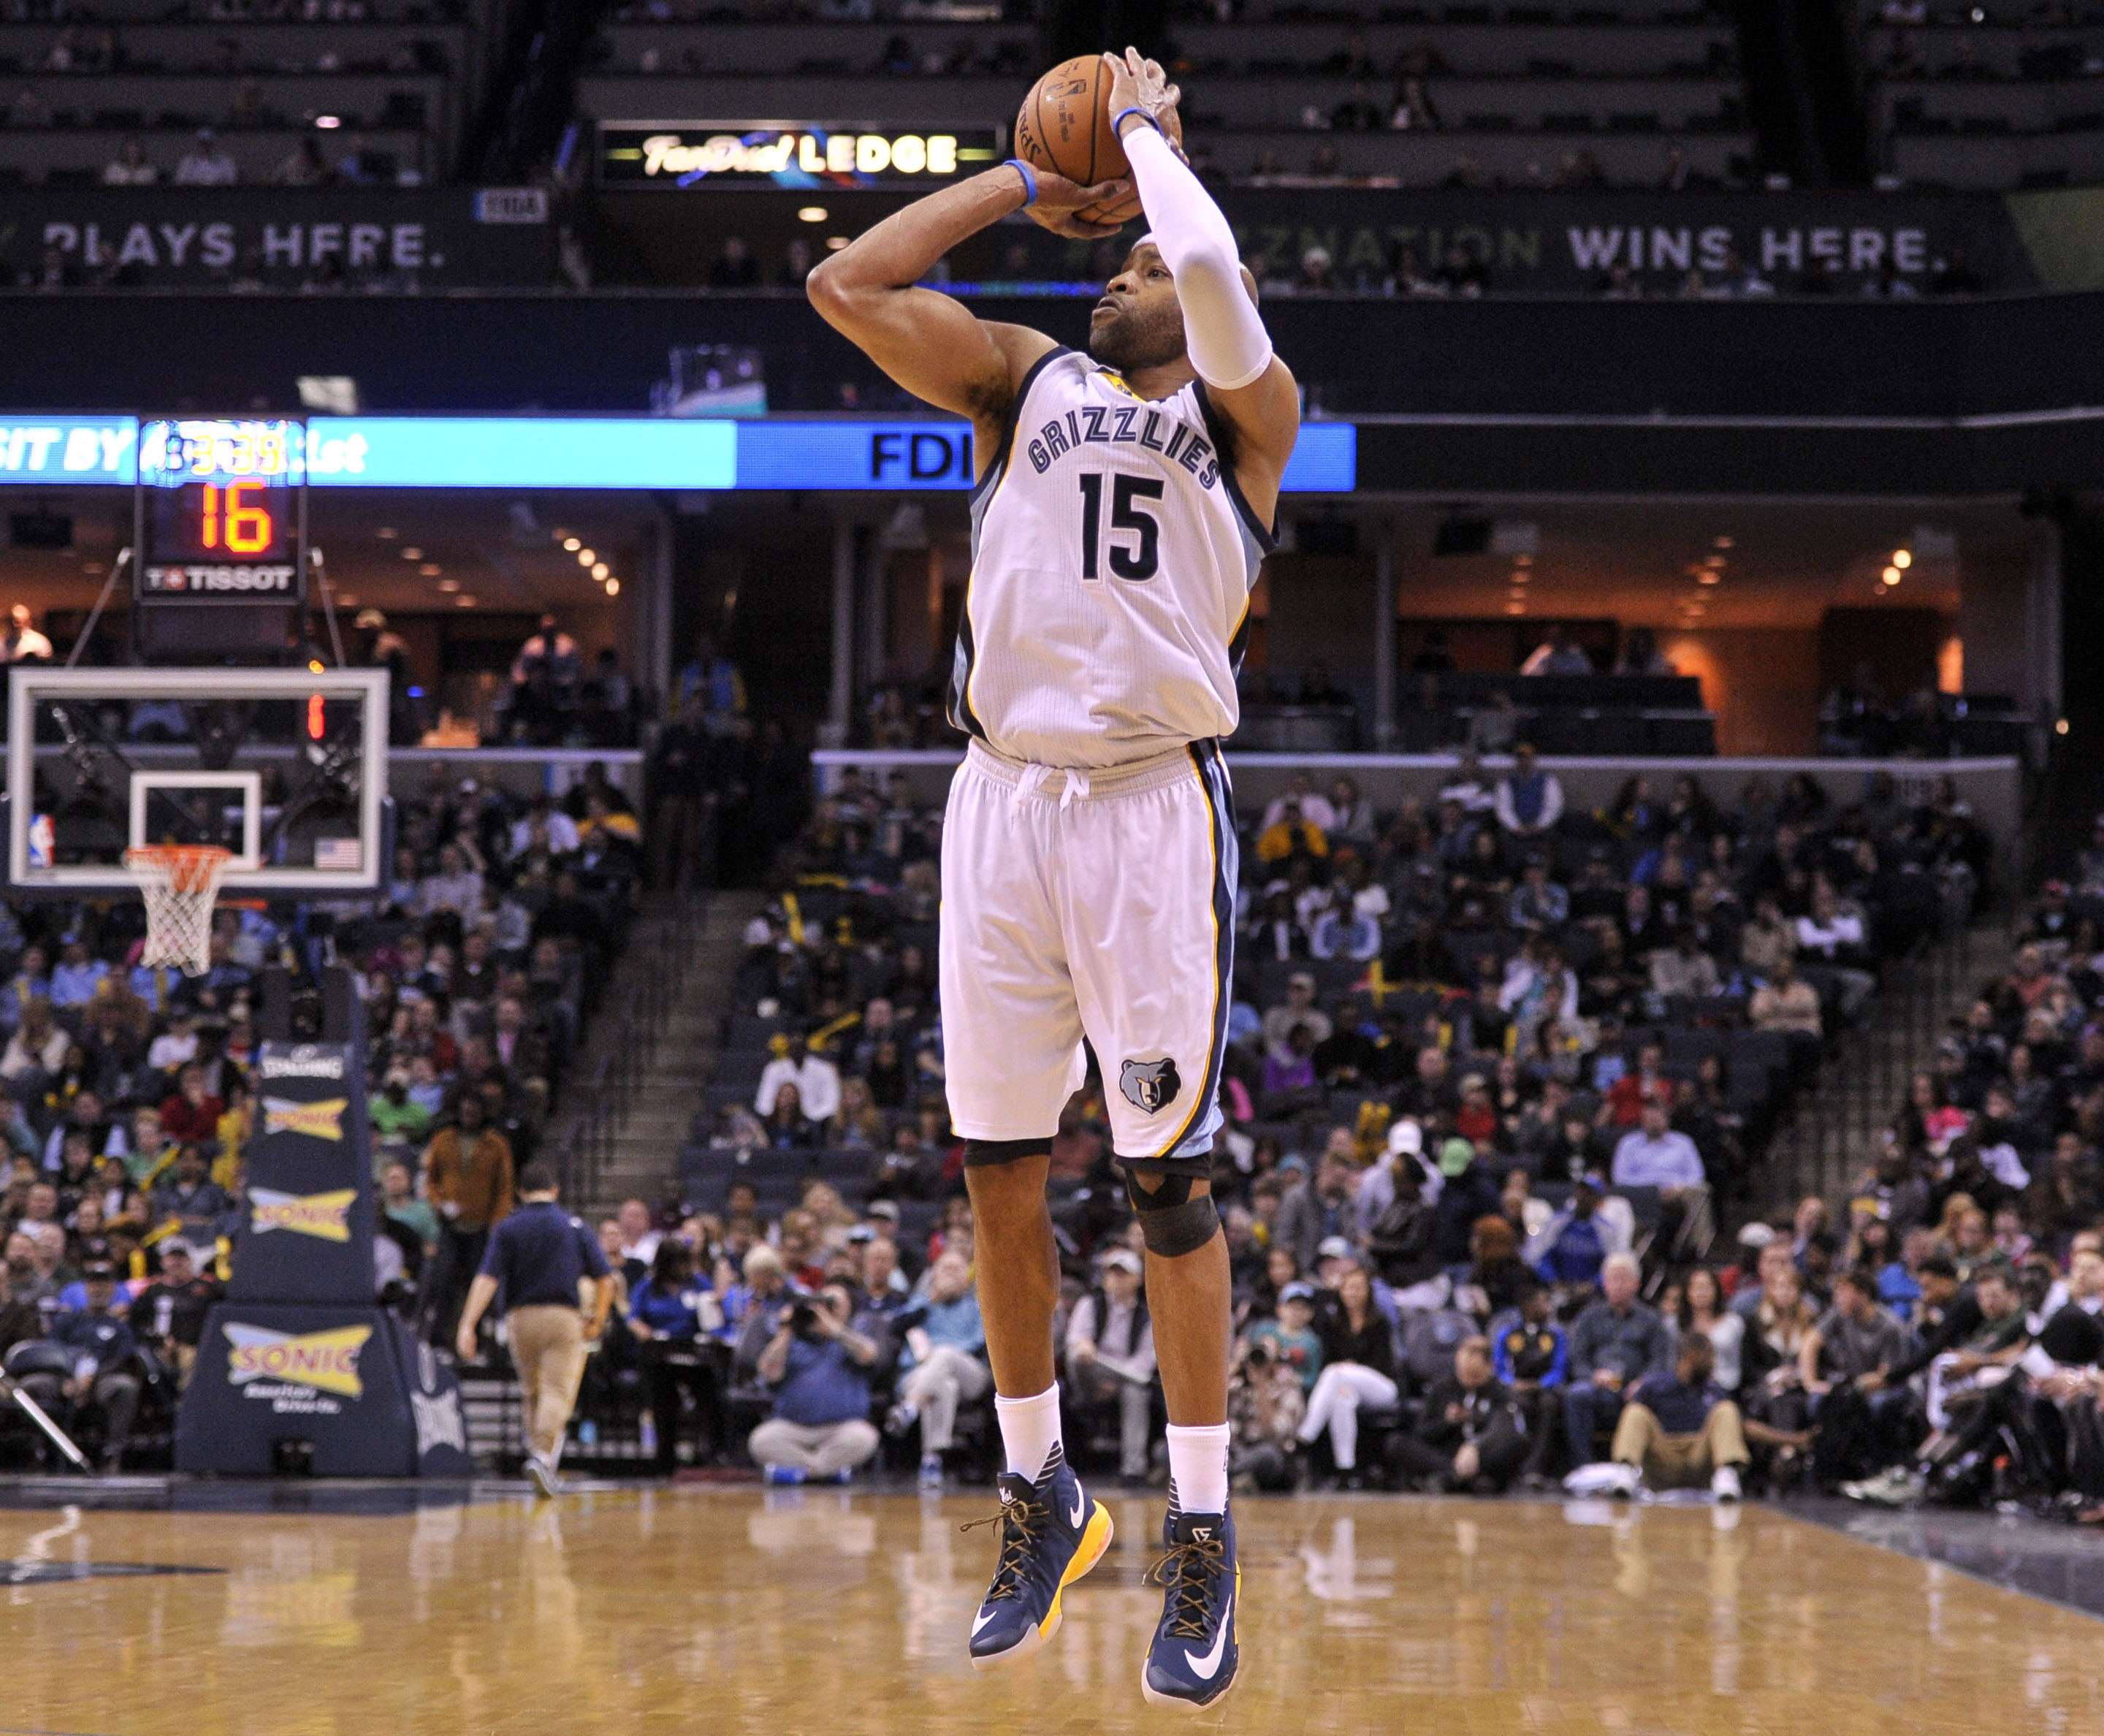 40-year-old Vince Carter scores 24 points on perfect 8-of-8 shooting